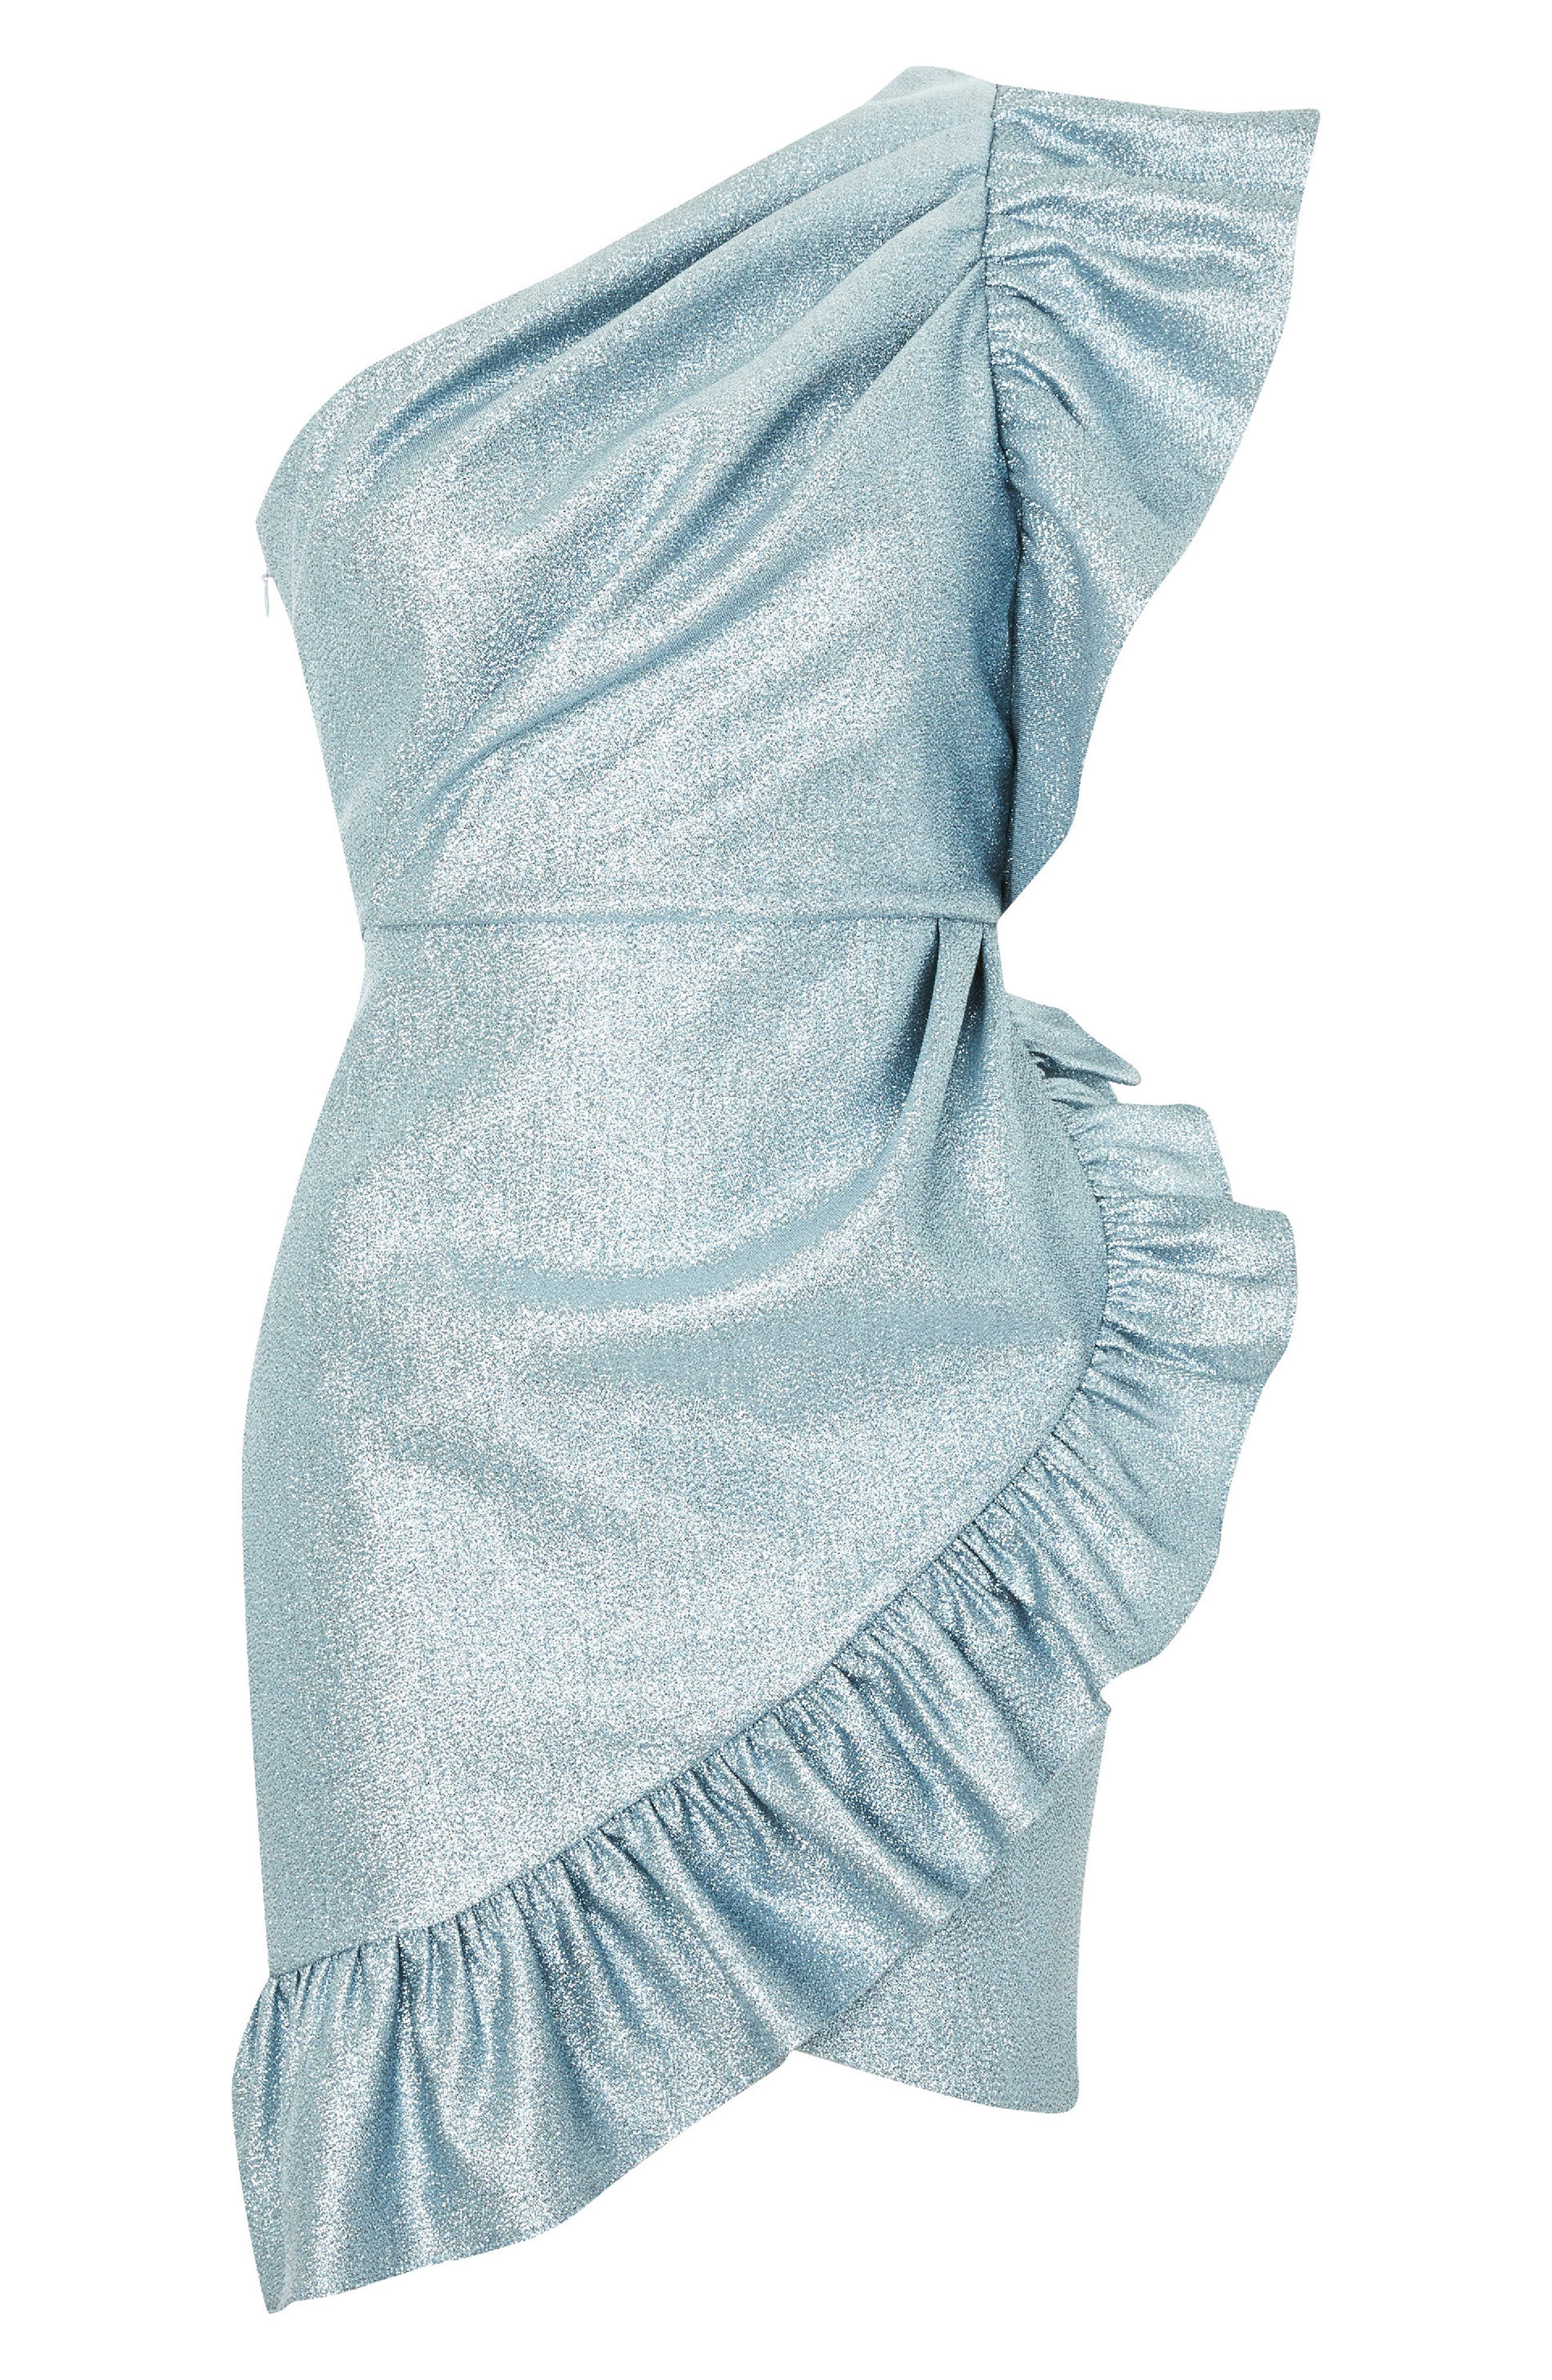 One-Shoulder Ruffle Minidress,                             Alternate thumbnail 8, color,                             Blue